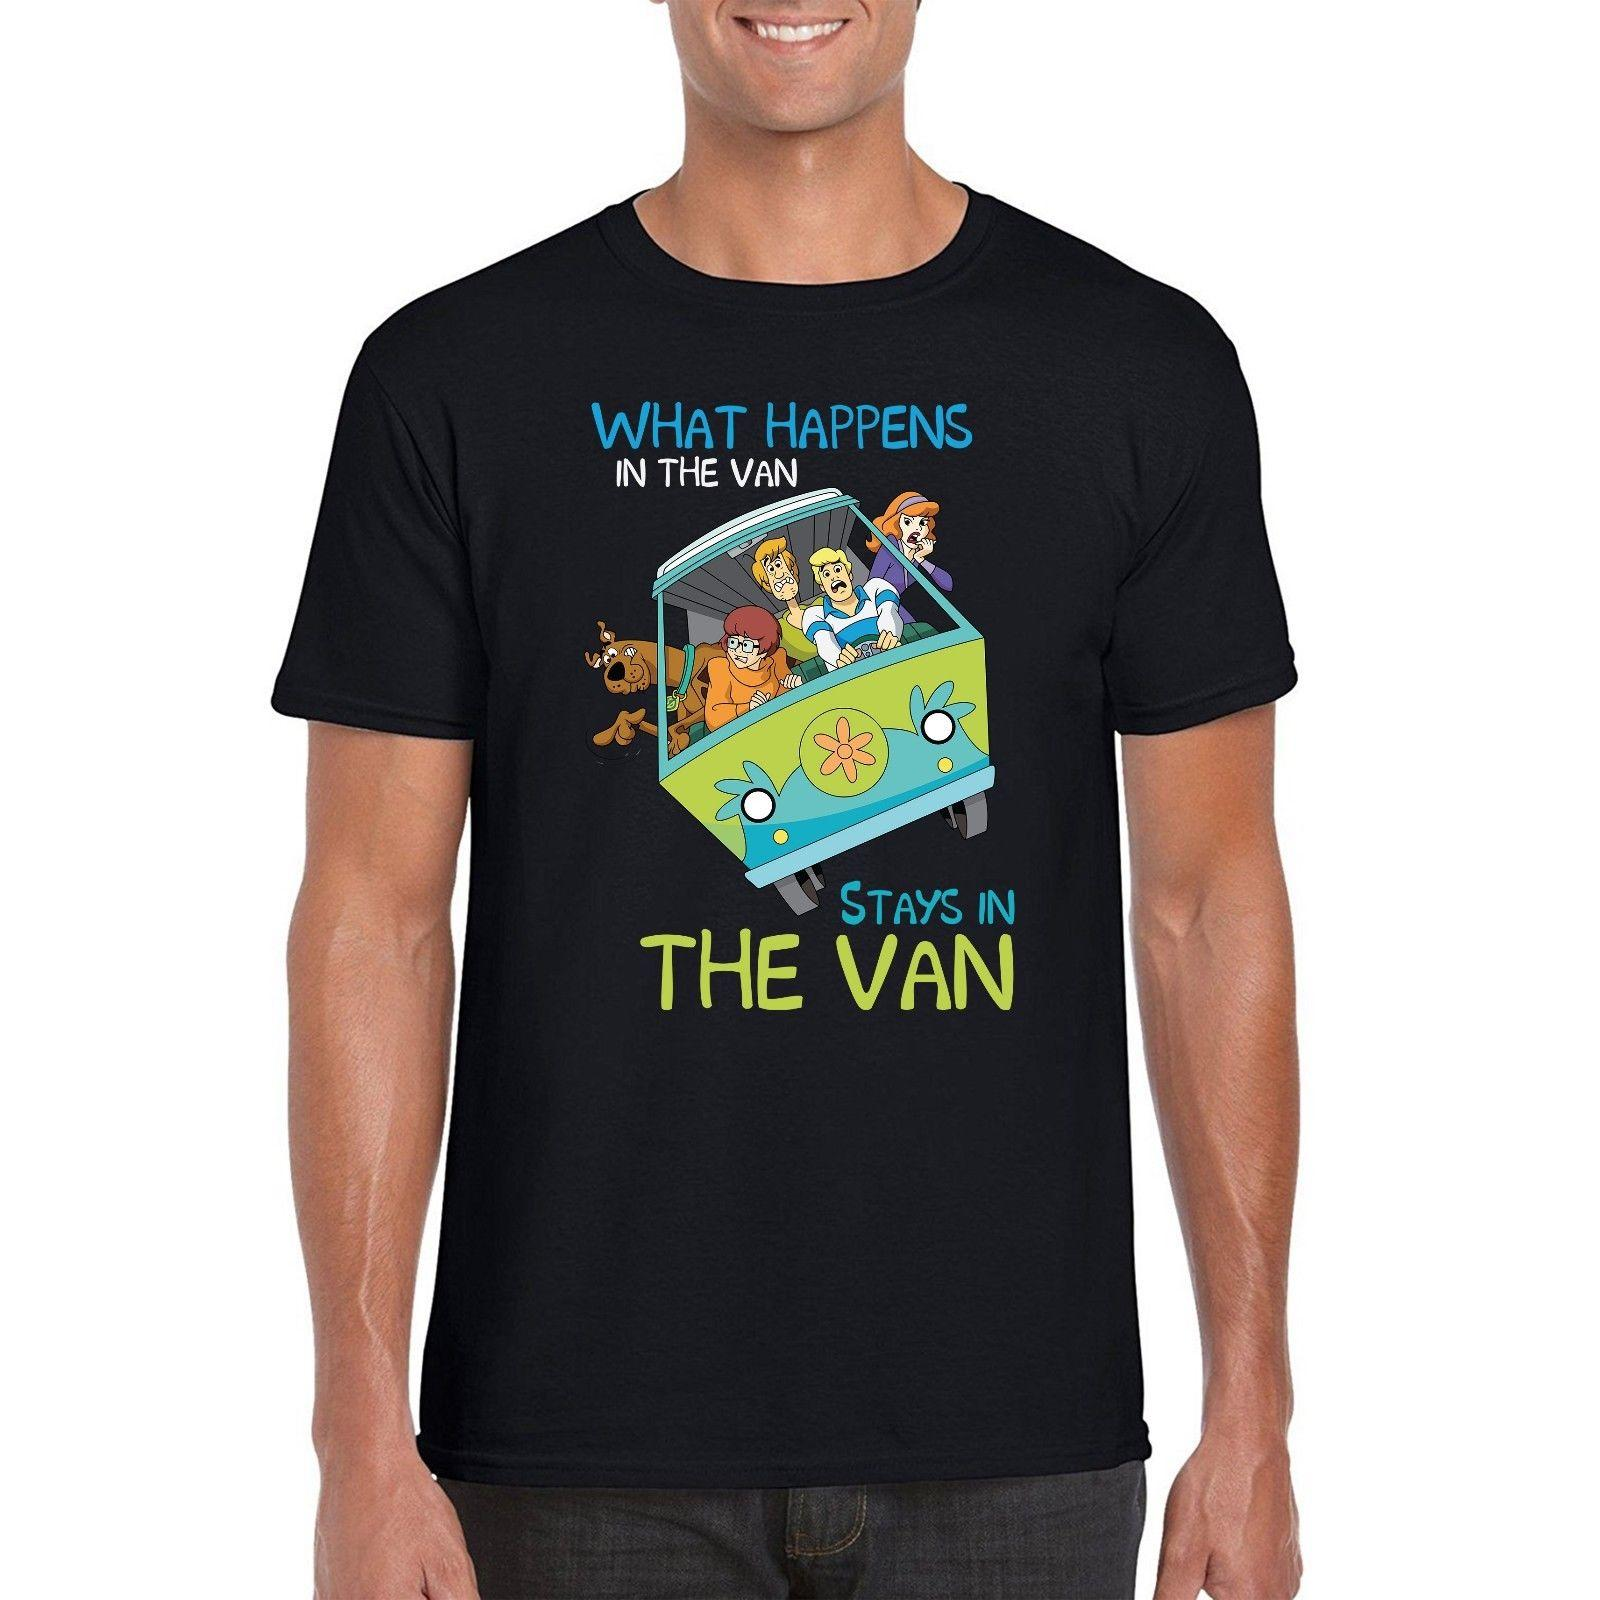 15ed34a7e0 Scooby Mystery Machine T Shirt What Happen In The Van Stay In Van Parody Tee  Top Funny Unisex Casual Tee Gift The Coolest T Shirts T Shirt Shirt Designs  ...